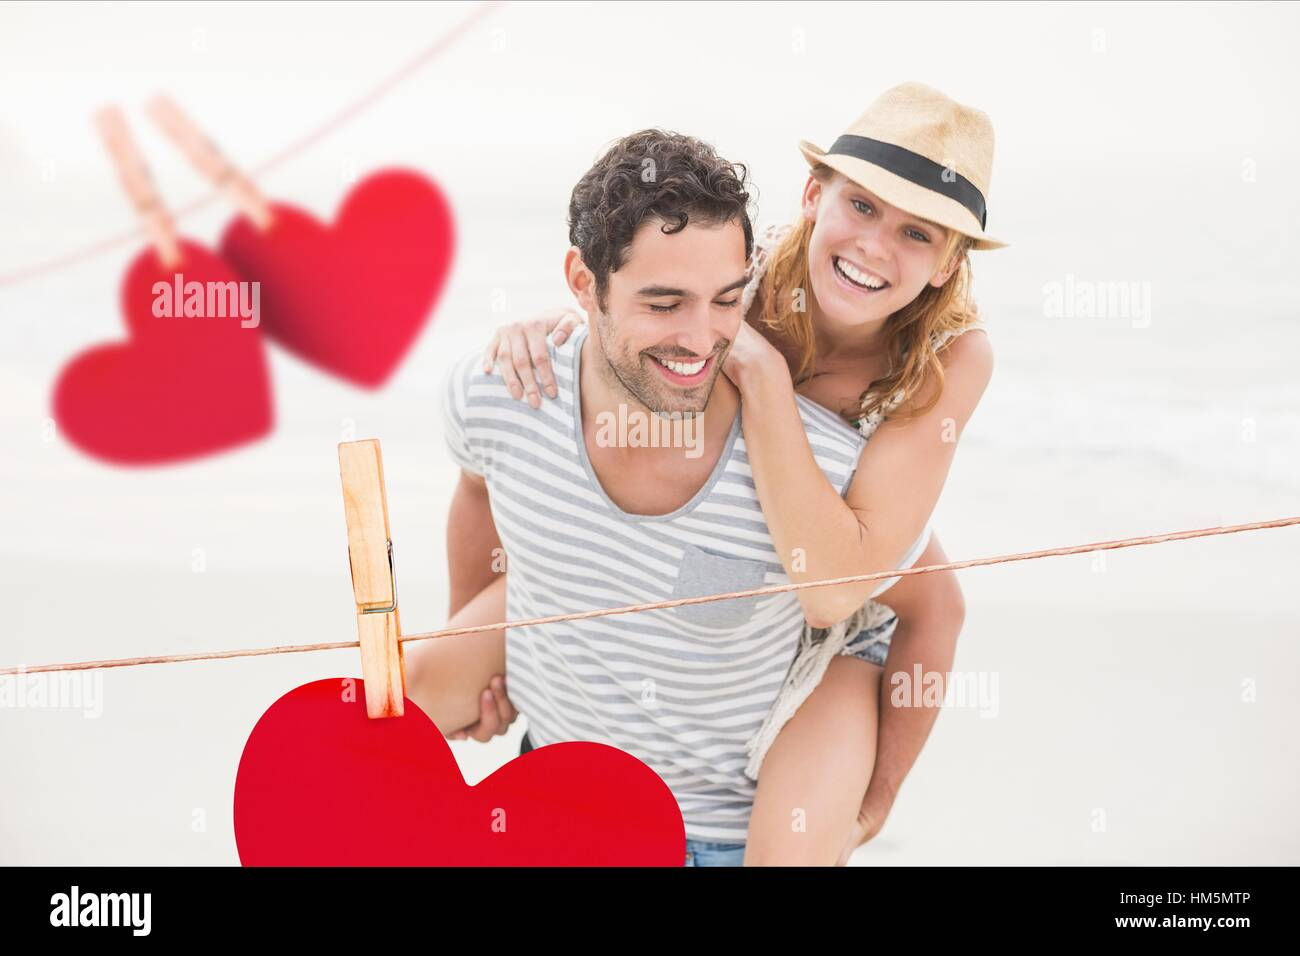 Composite image of red hanging hearts and man giving piggyback to woman - Stock Image